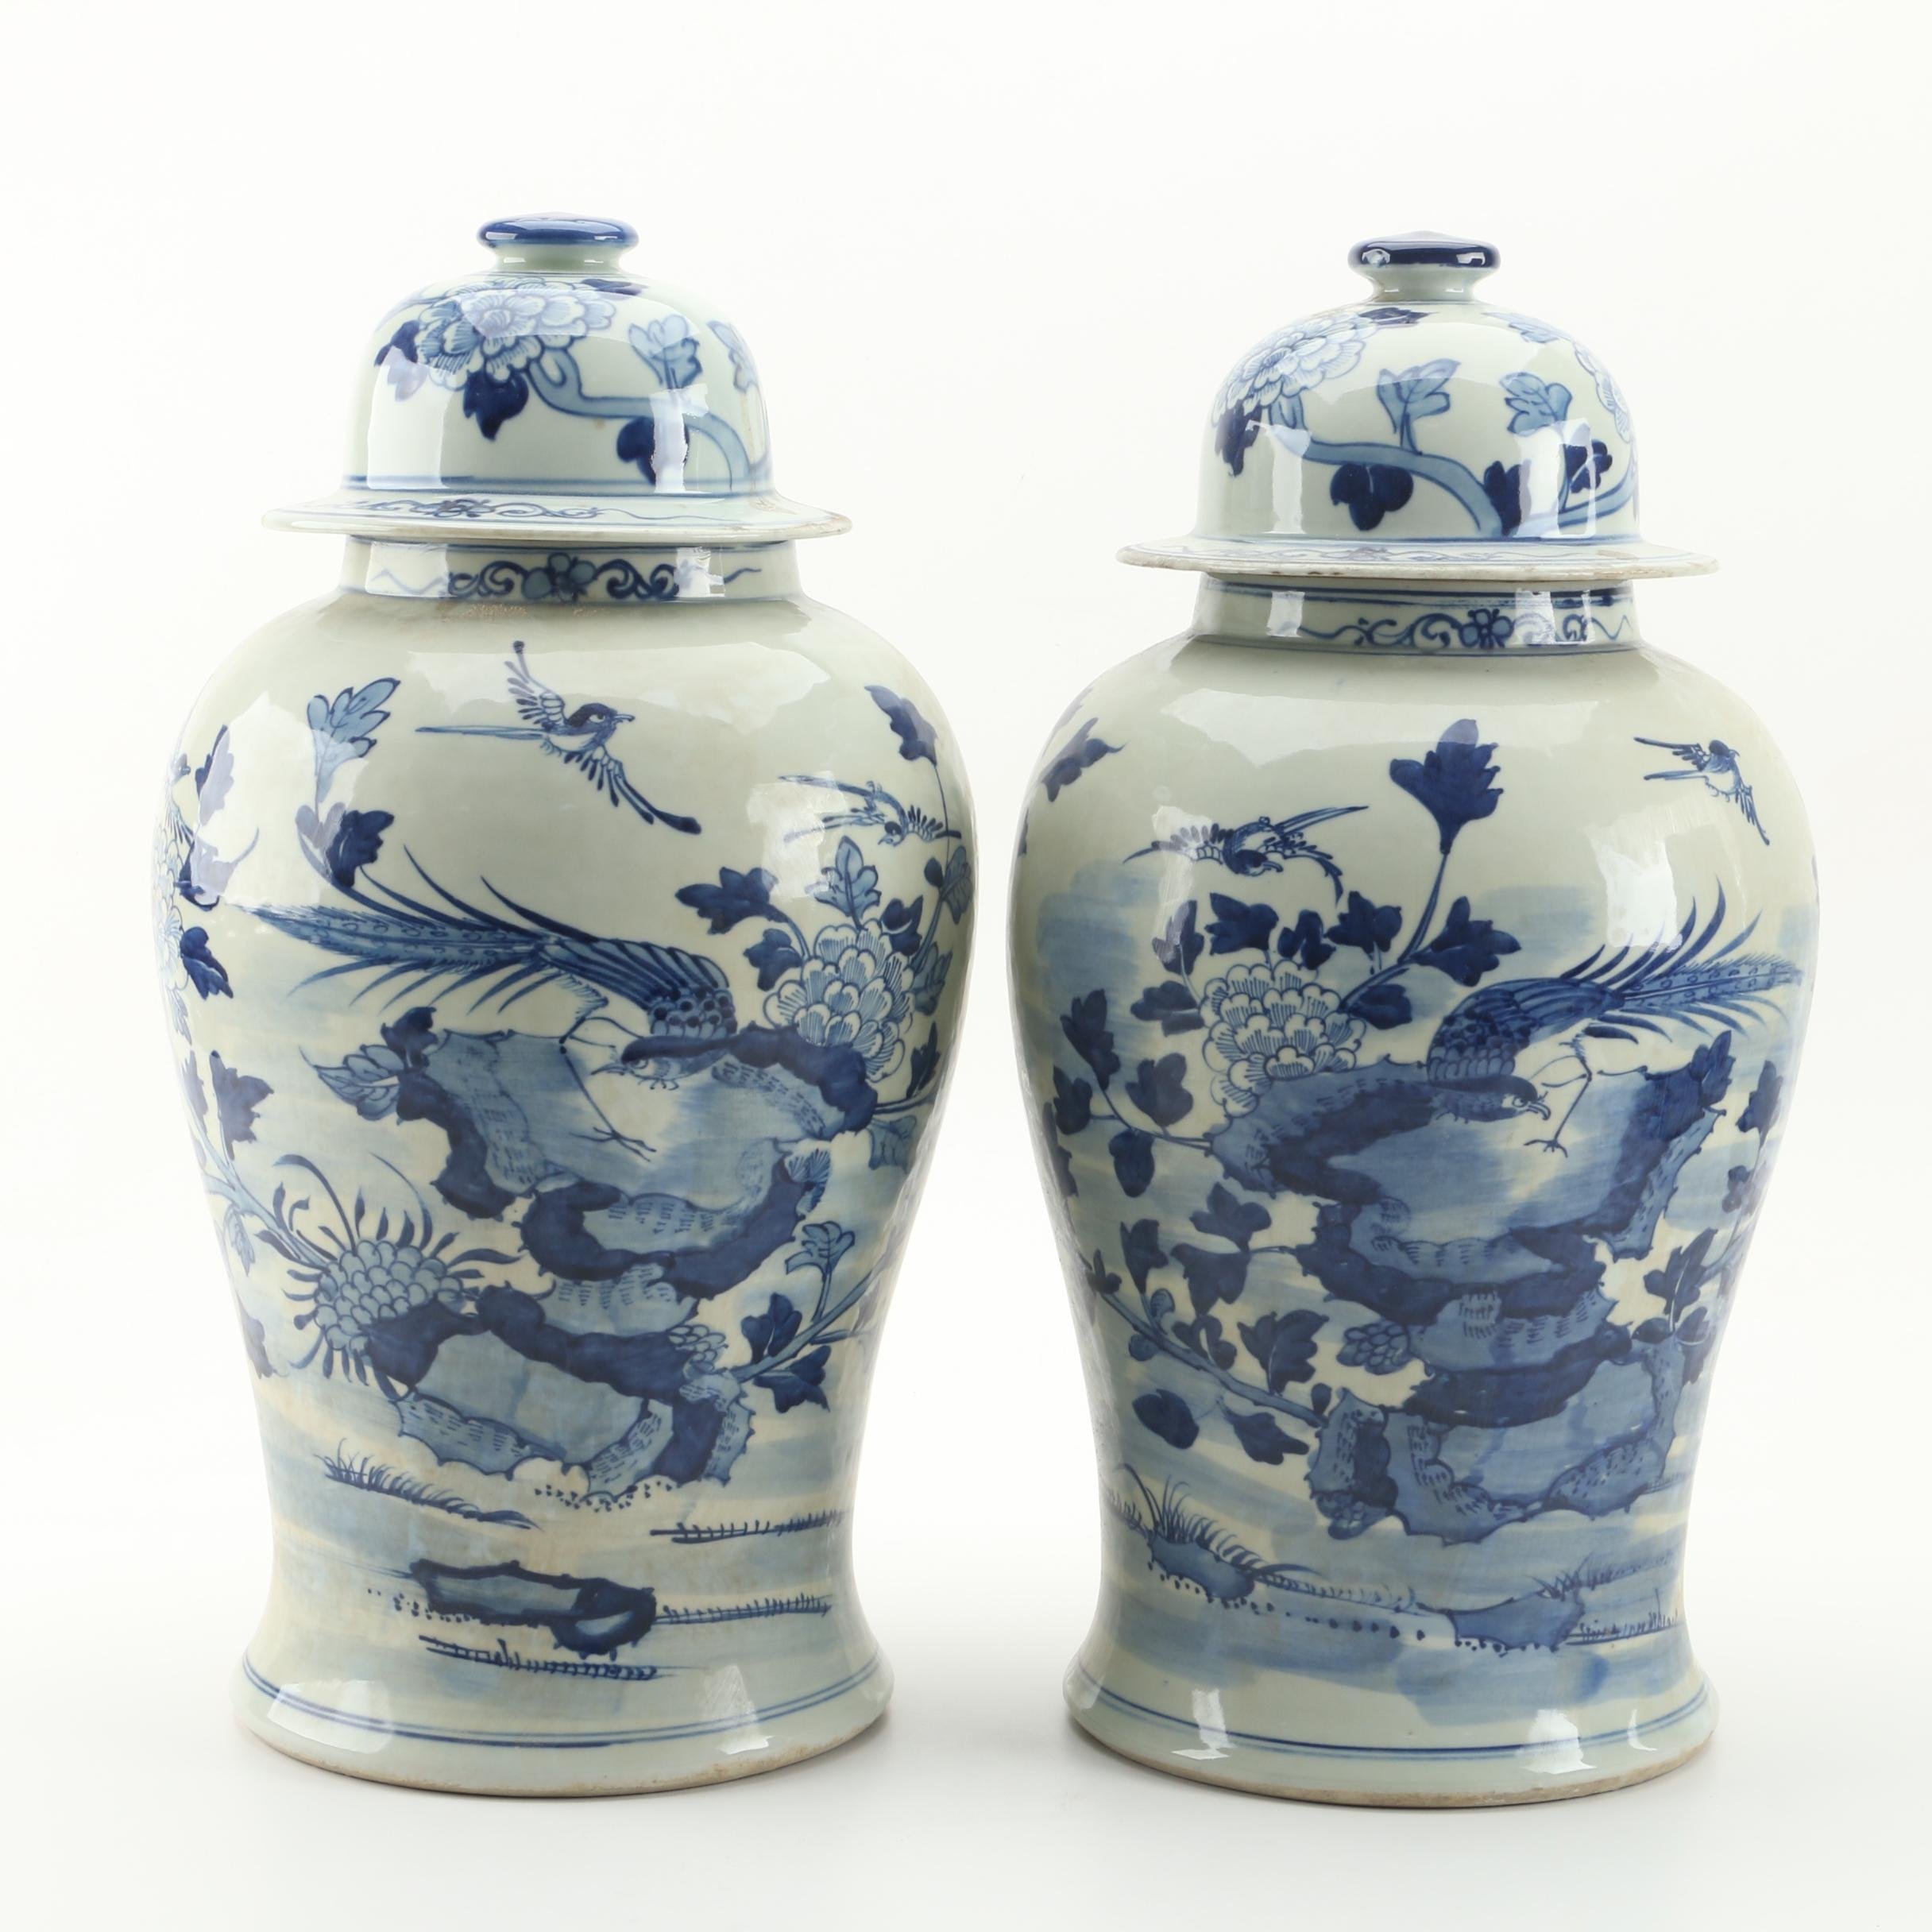 Chinese Influenced Hand-Painted Blue and White Floral and Fauna Ginger Jars